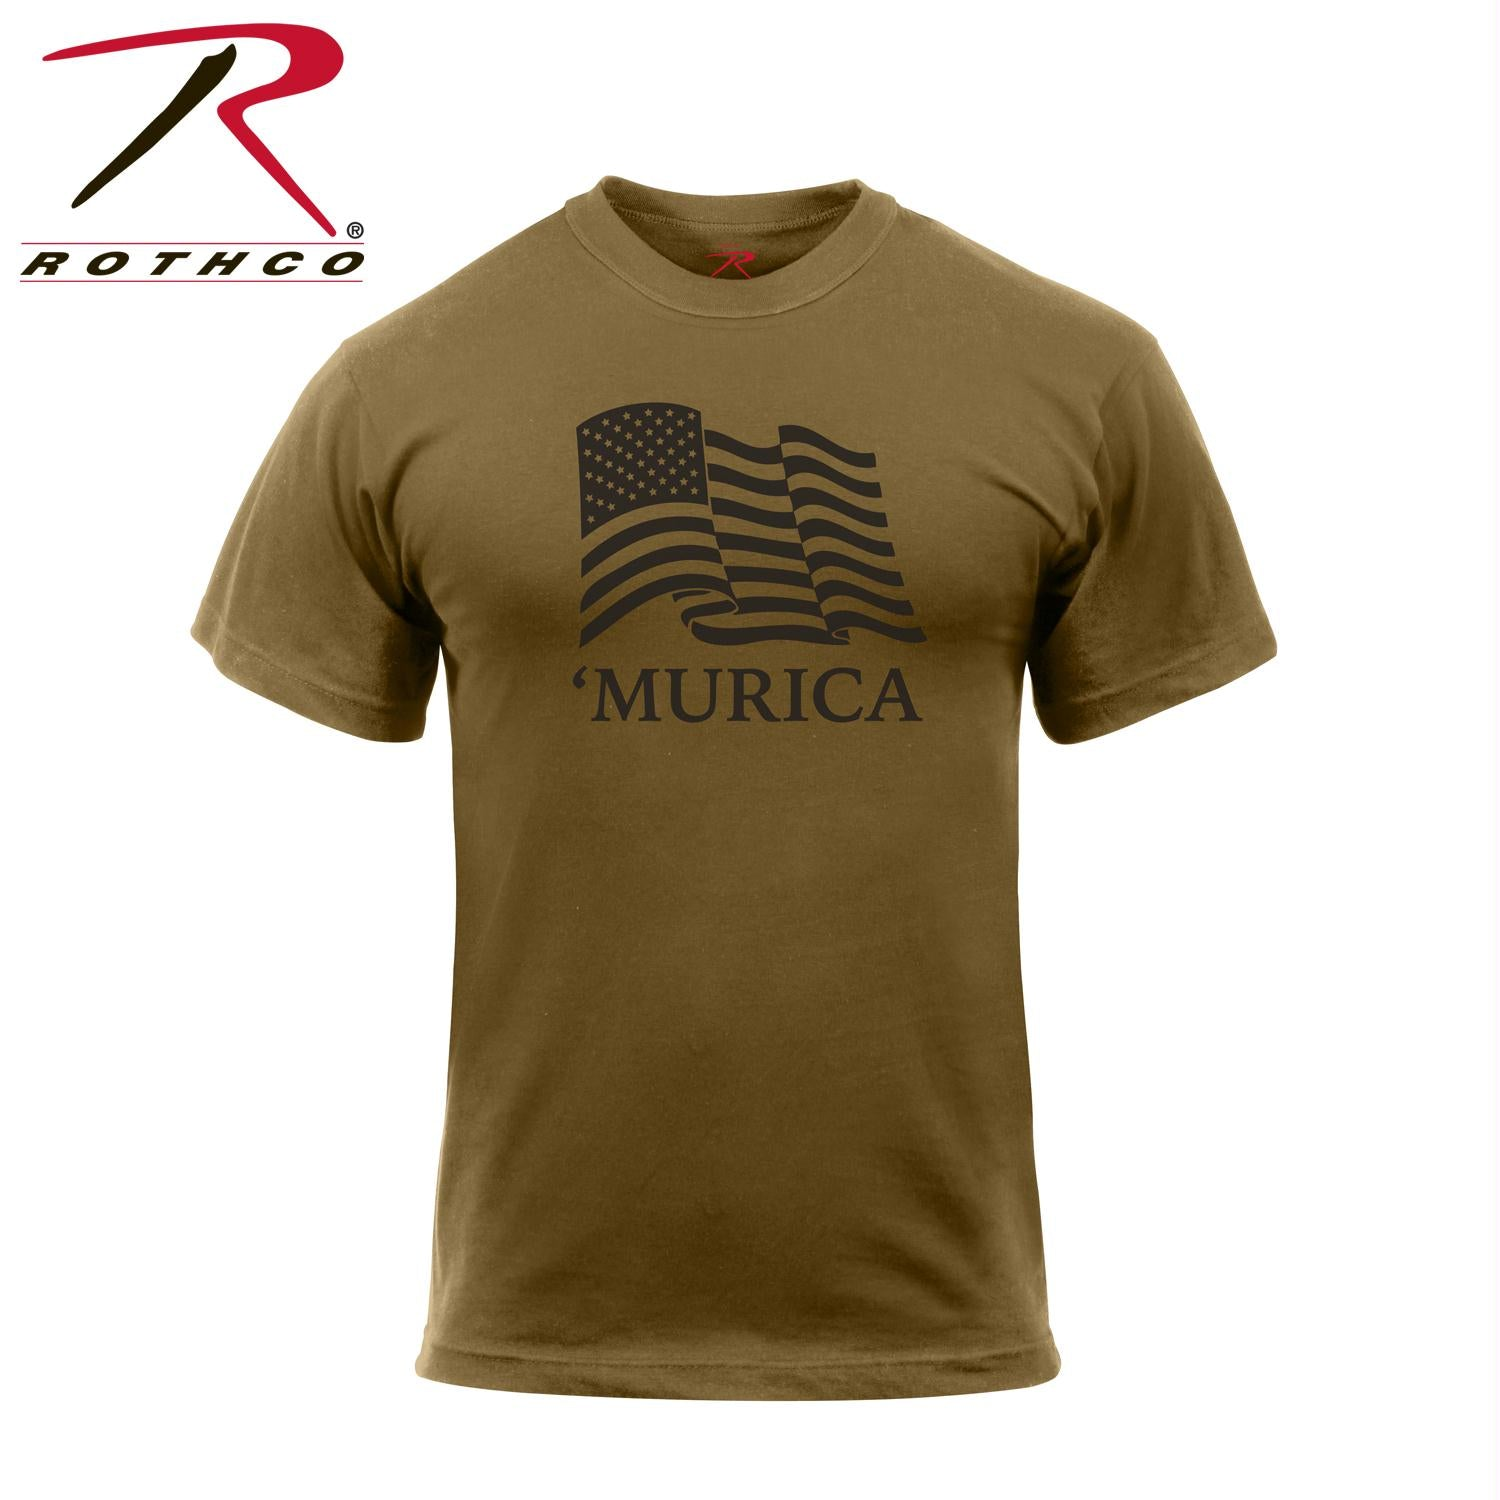 Rothco 'Murica US Flag T-Shirt - Coyote Brown / M